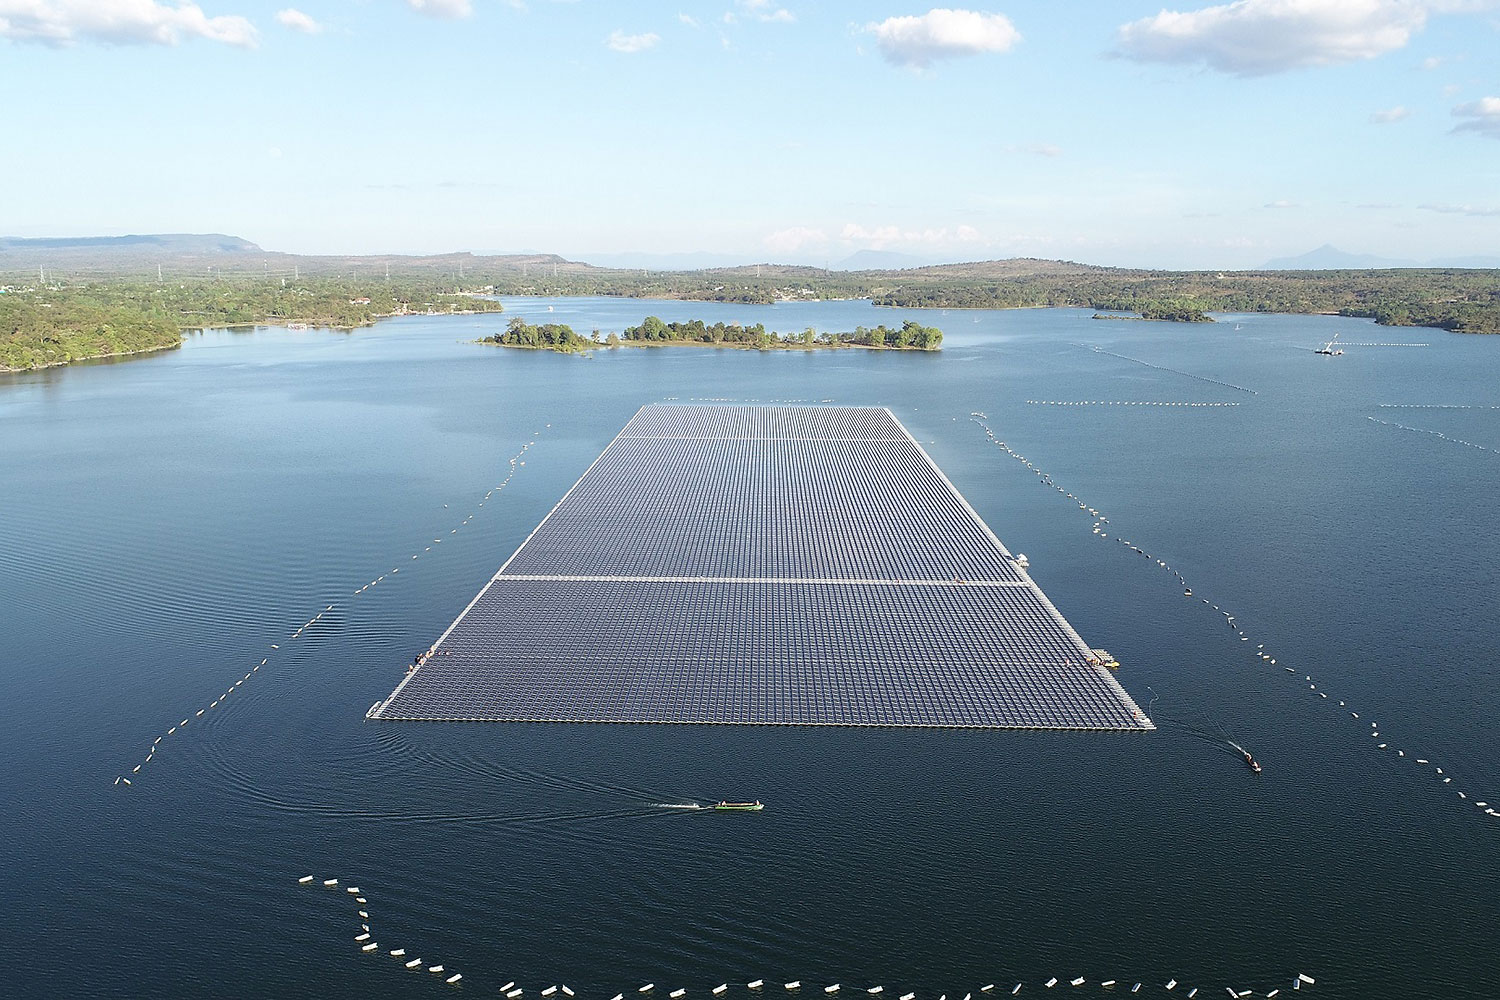 Scheduled to be completed this month, the 45-megawatt floating solar power installation in the Sirindhorn Dam reservoir in Ubon Ratchathani will be the world's largest of its kind, according to the Electricity Generating Authority of Thailand. (Photo: Egat)